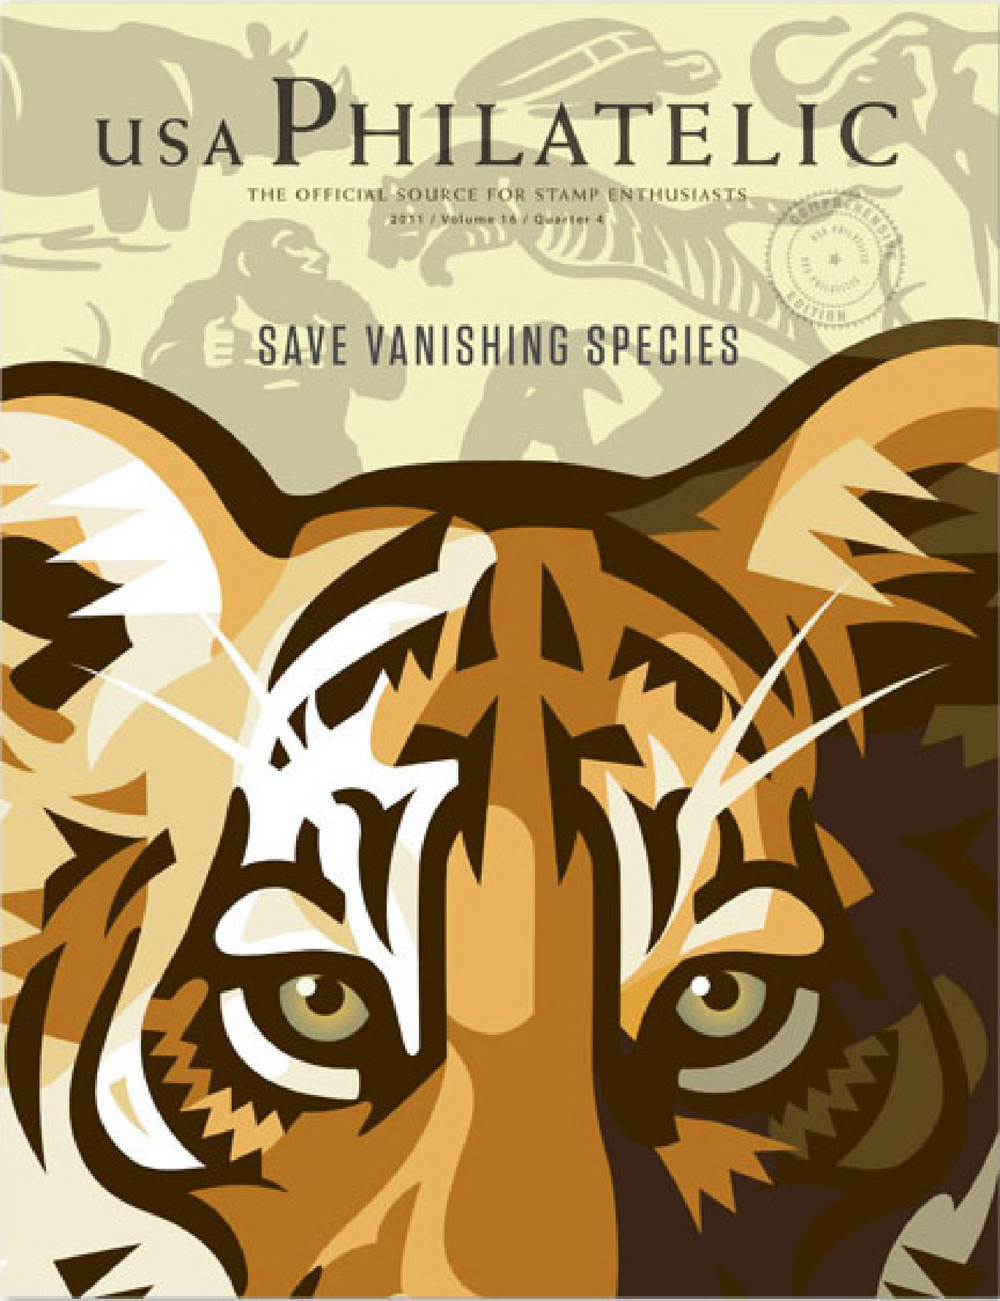 Save Vanishing Species stamp on cover of the US Philatelic catalog.